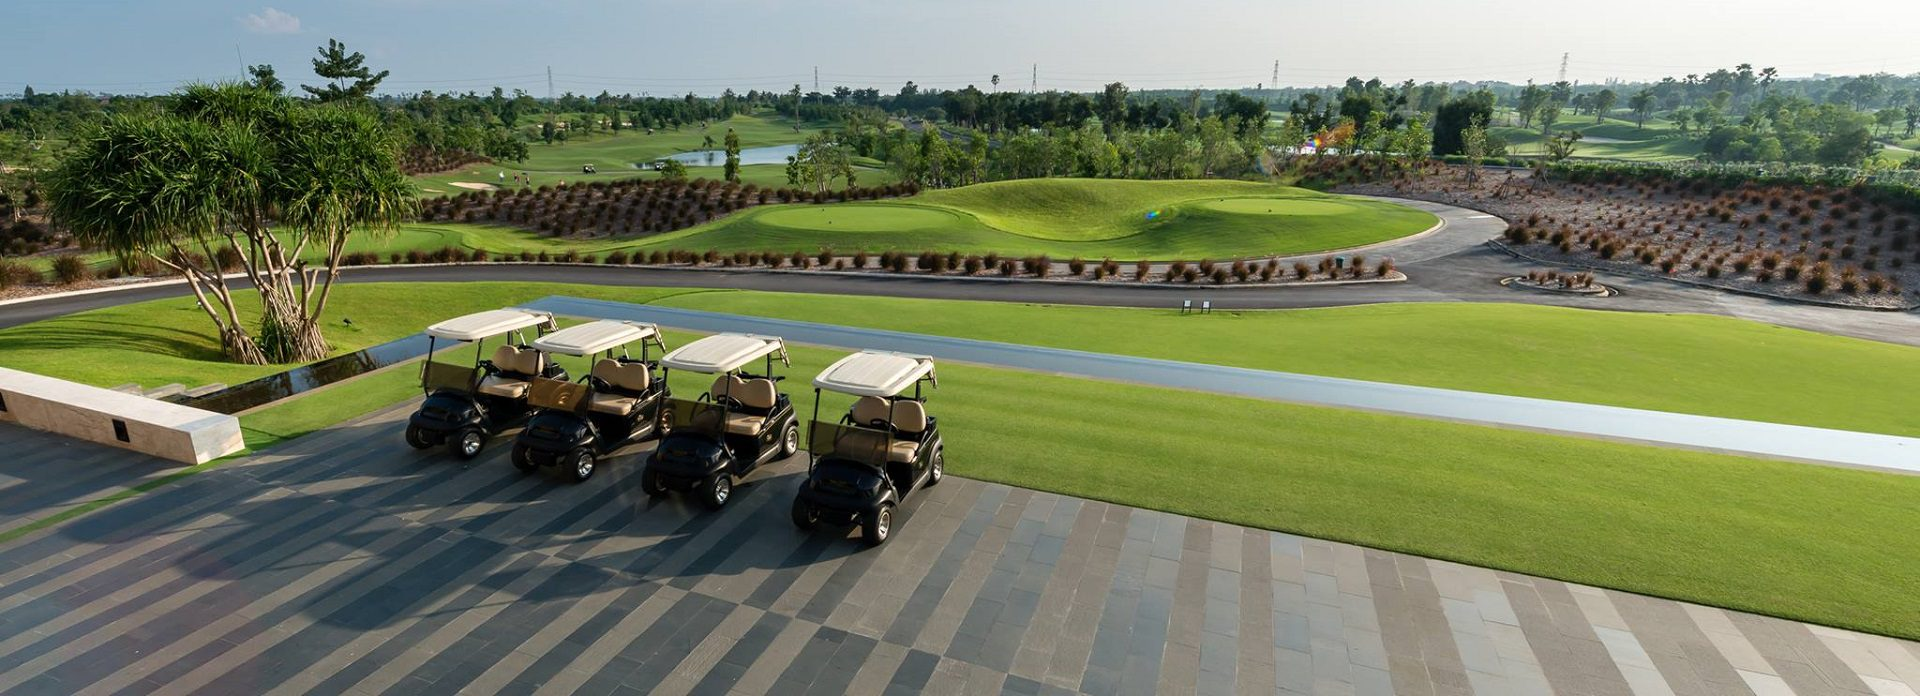 Nikanti - The Bangkok Golf Course That Deserves the Ride Out of Town